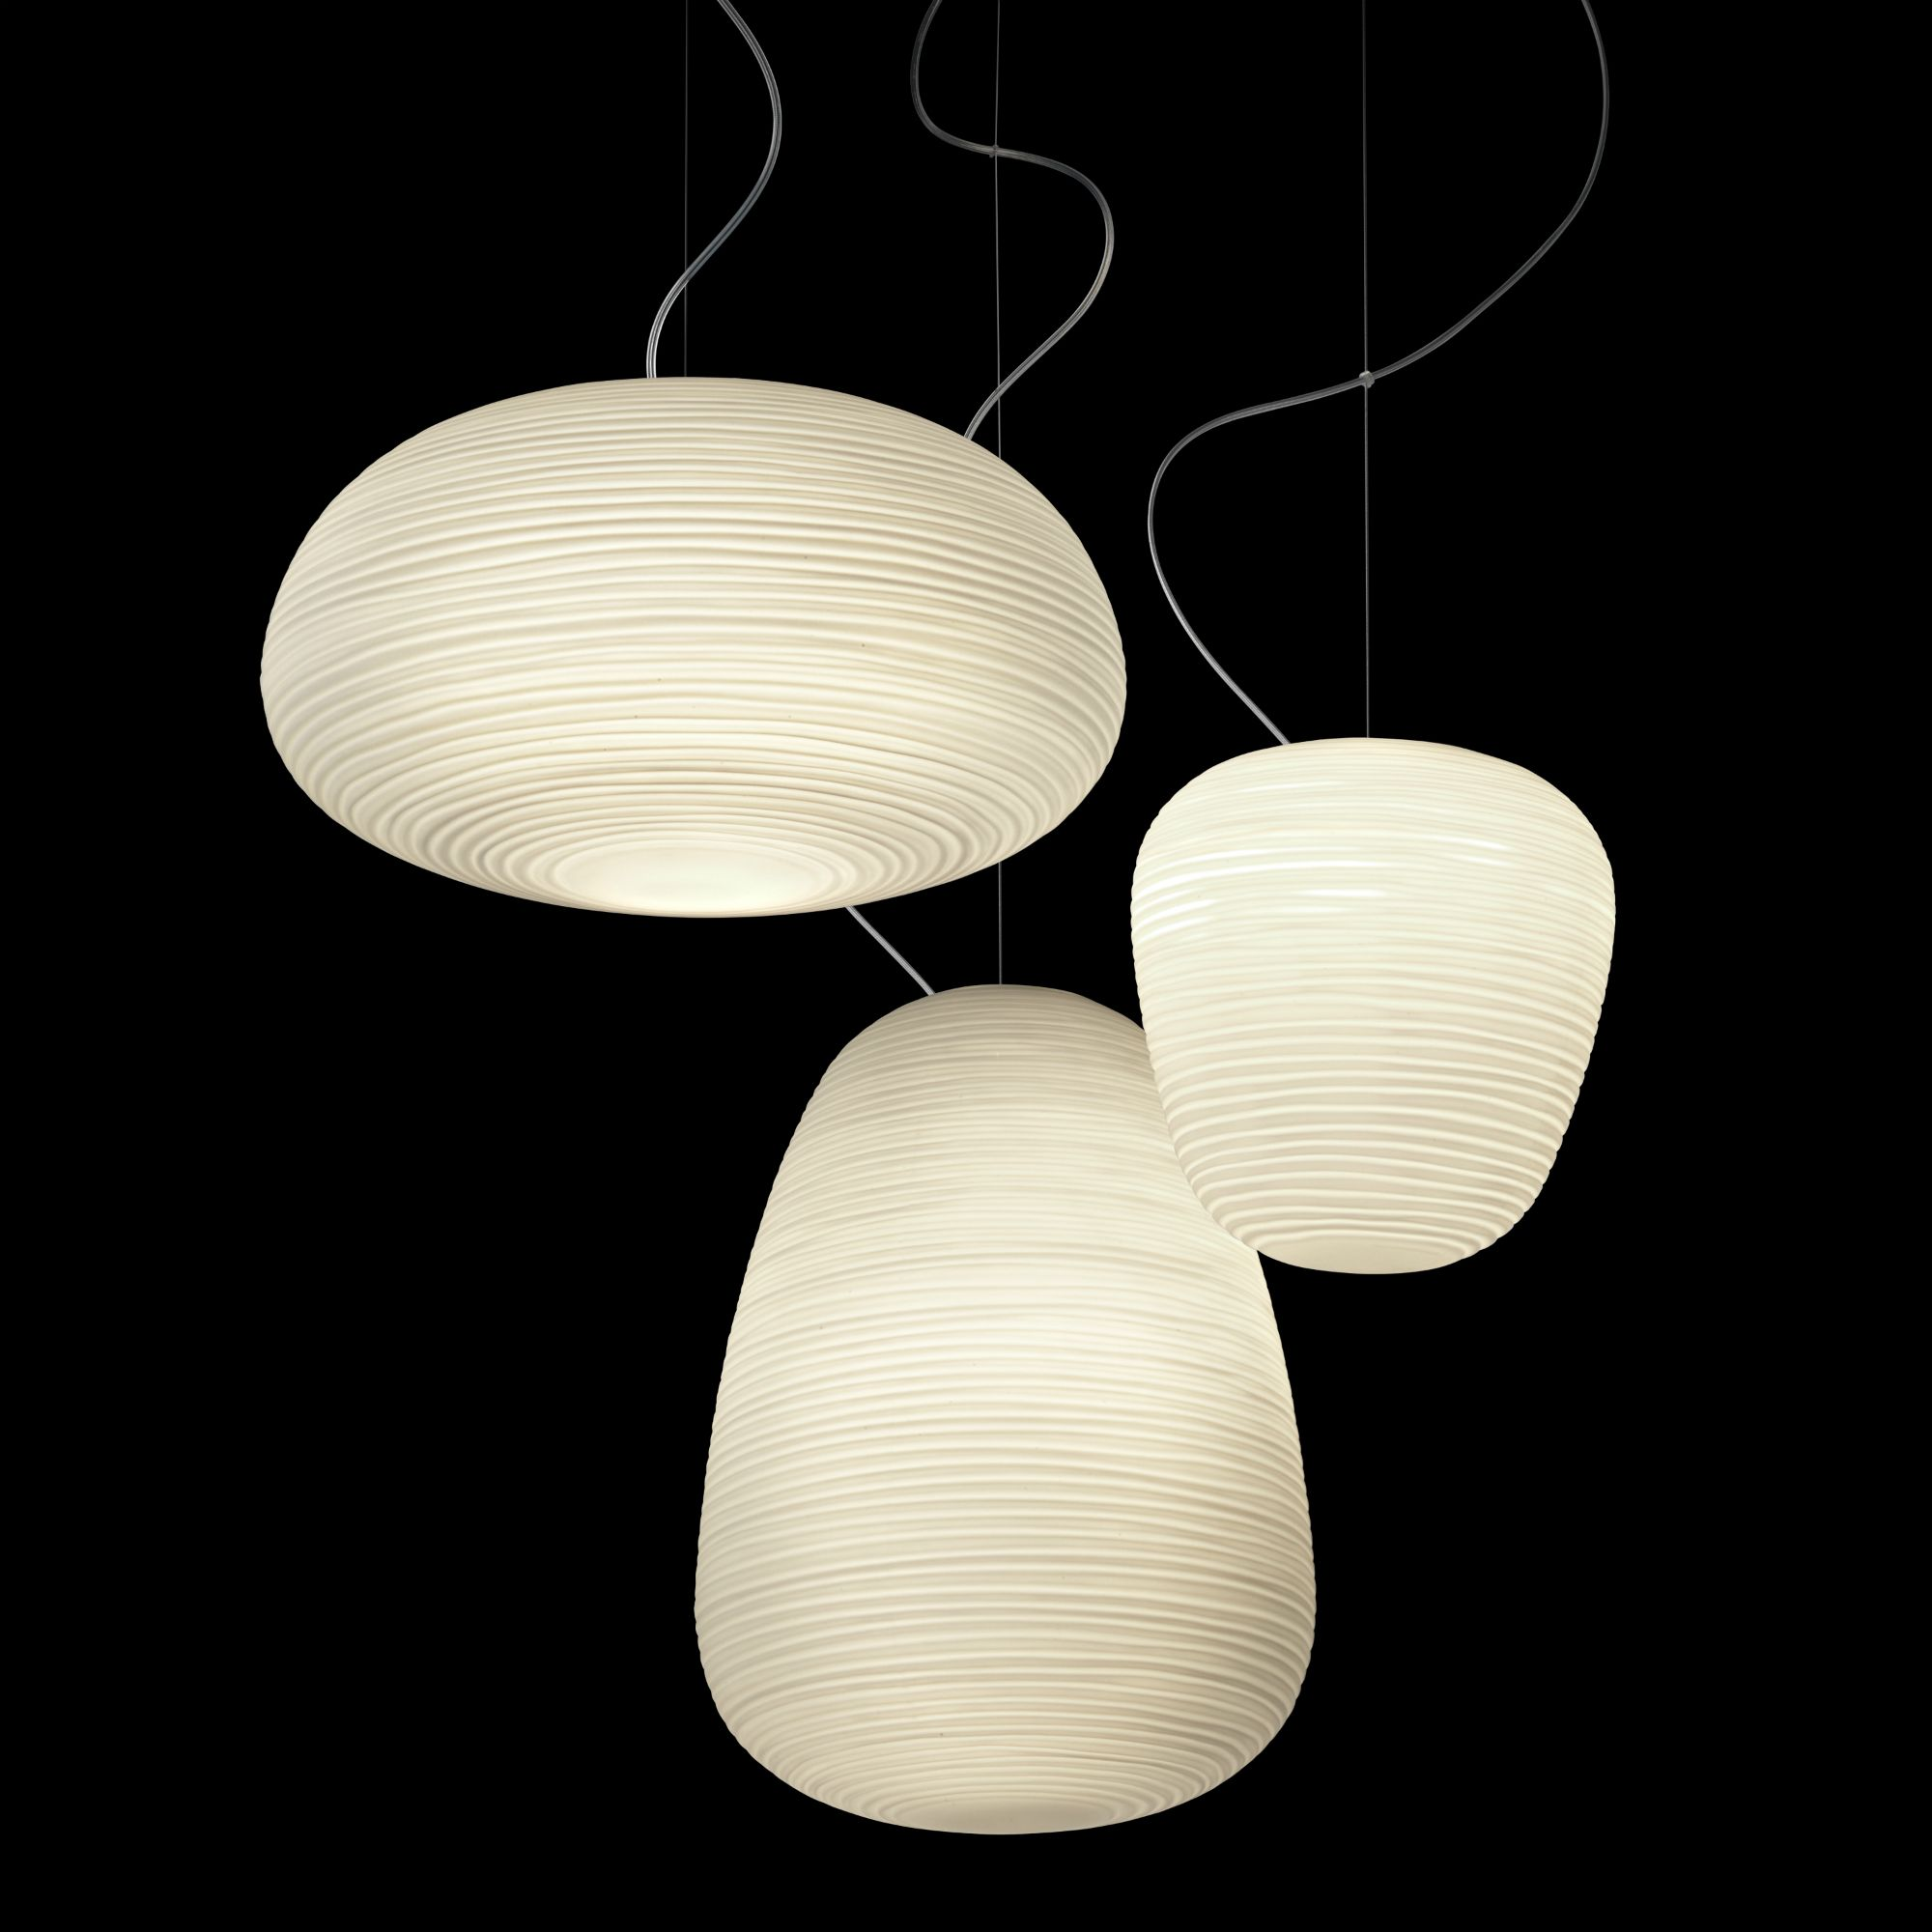 Rituals suspension s foscarini new house pinterest hanging manufacturer foscarini designers ludovica roberto palomba the challenge was to translate the lightness of washi paper used in oriental lanterns into a arubaitofo Image collections